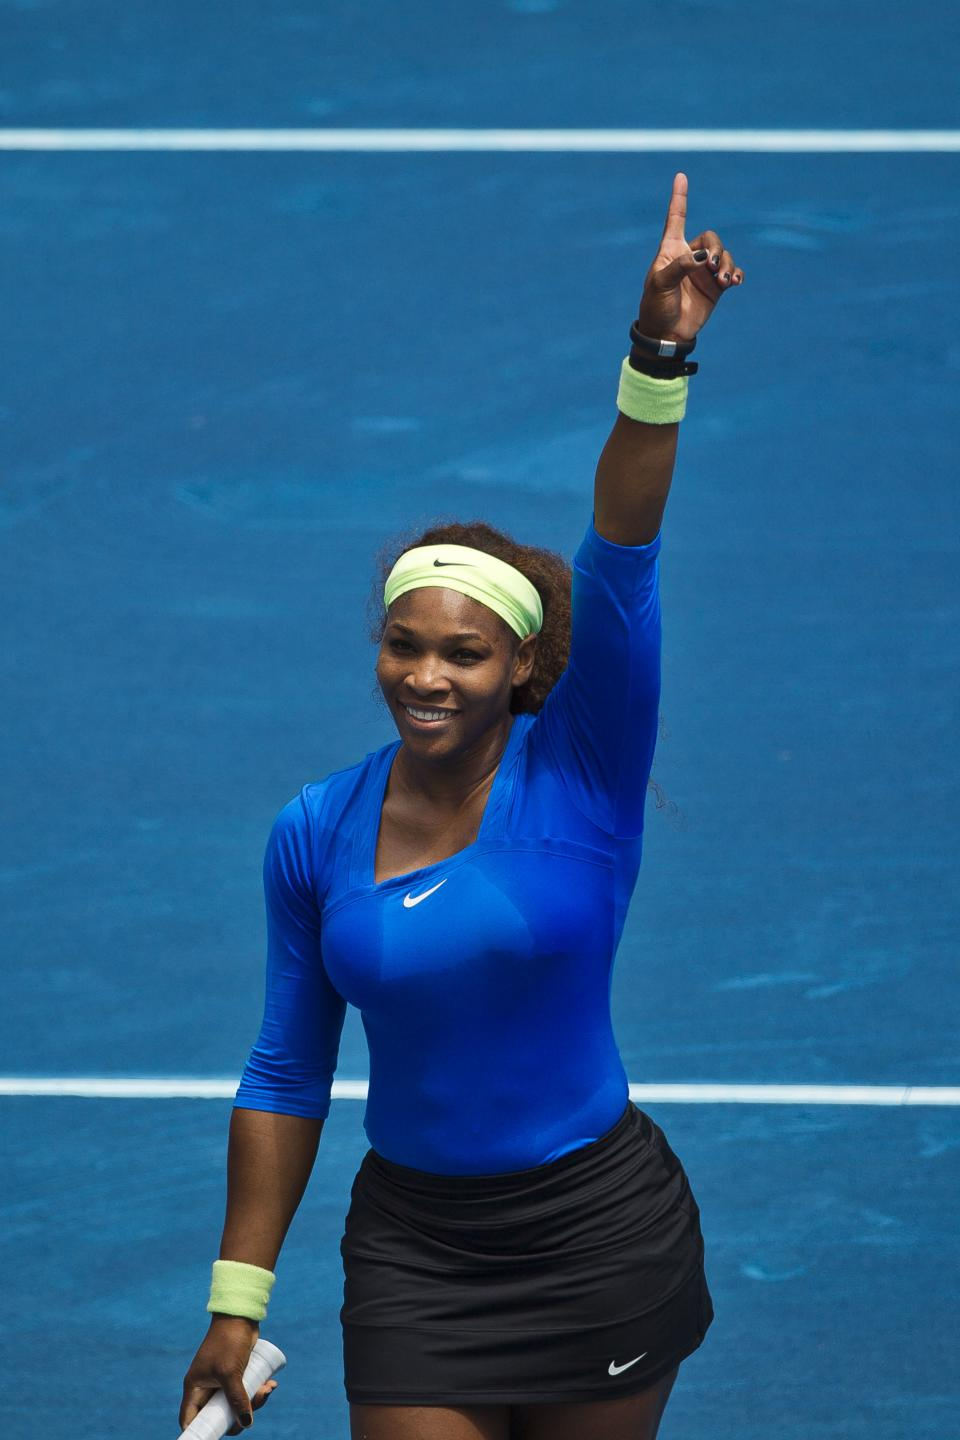 Serena Williams from the U.S. celebrates after winning the Madrid Open tennis tournament semifinal match against Czech Republic's Lucie Hradecka, in Madrid, Saturday, May 12, 2012. (AP Photo/Daniel Ochoa de Olza)